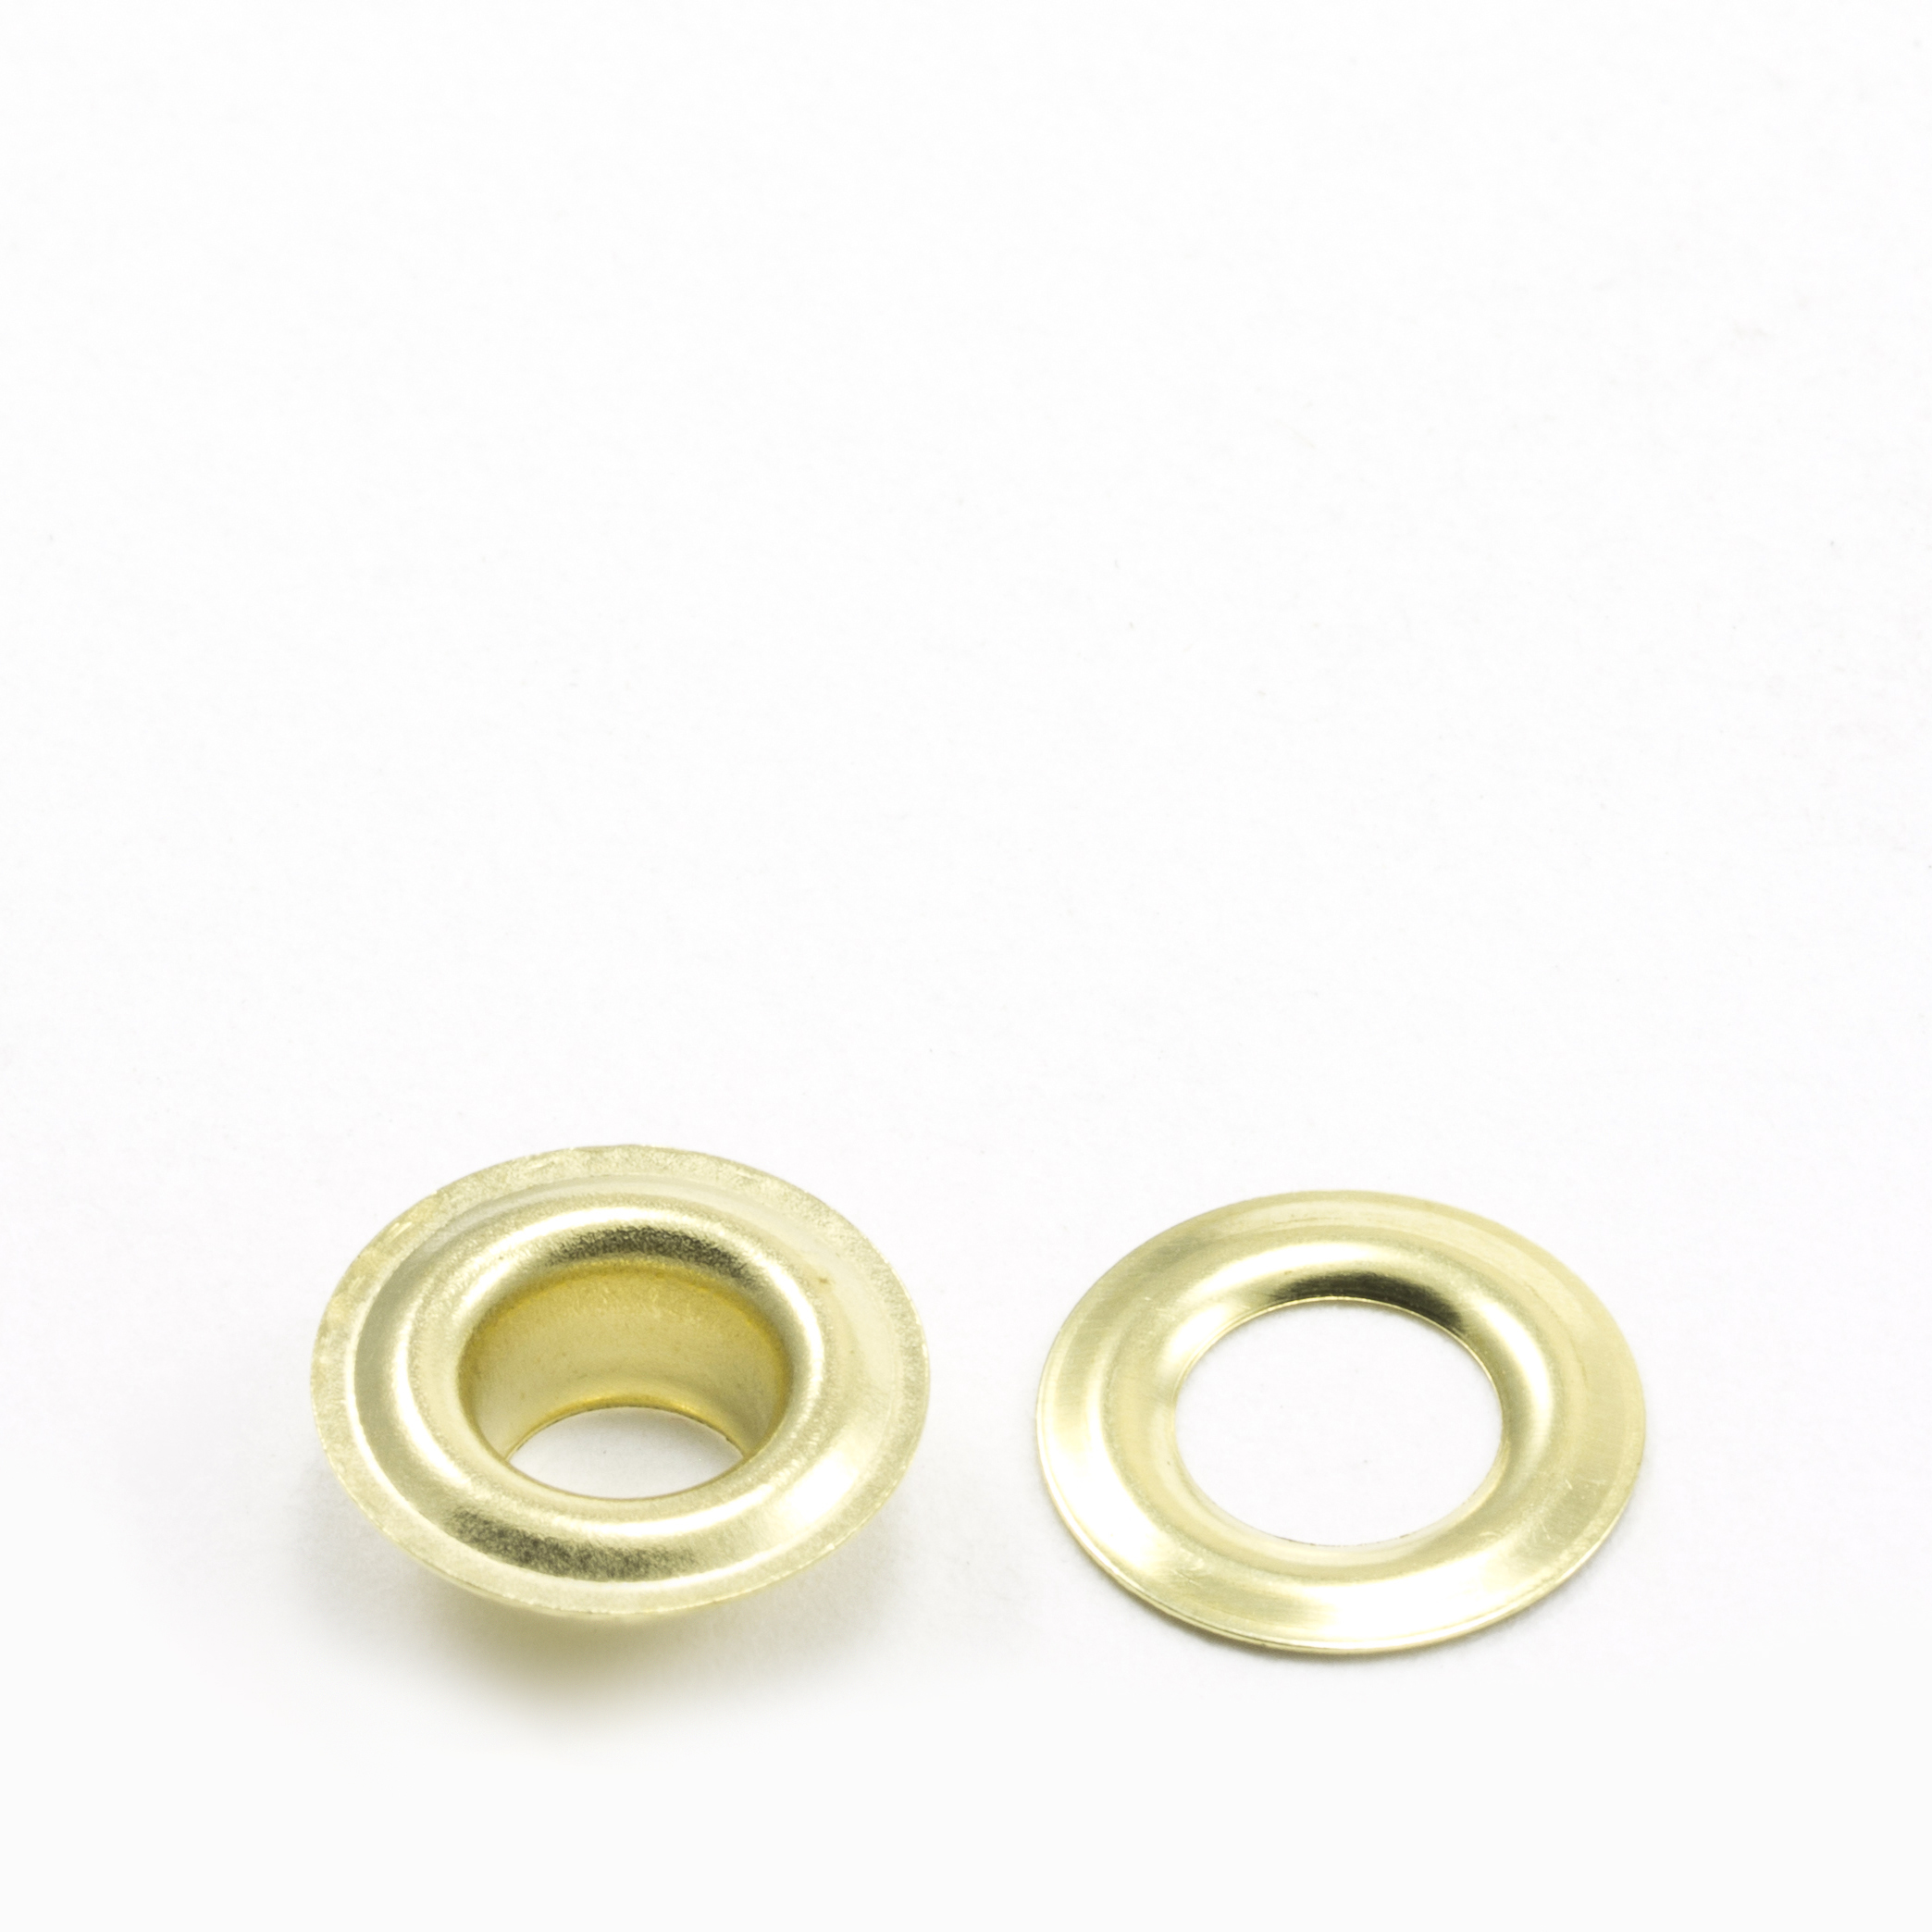 Thumbnail Grommet with Plain Washer #0 Brass 1/4 1